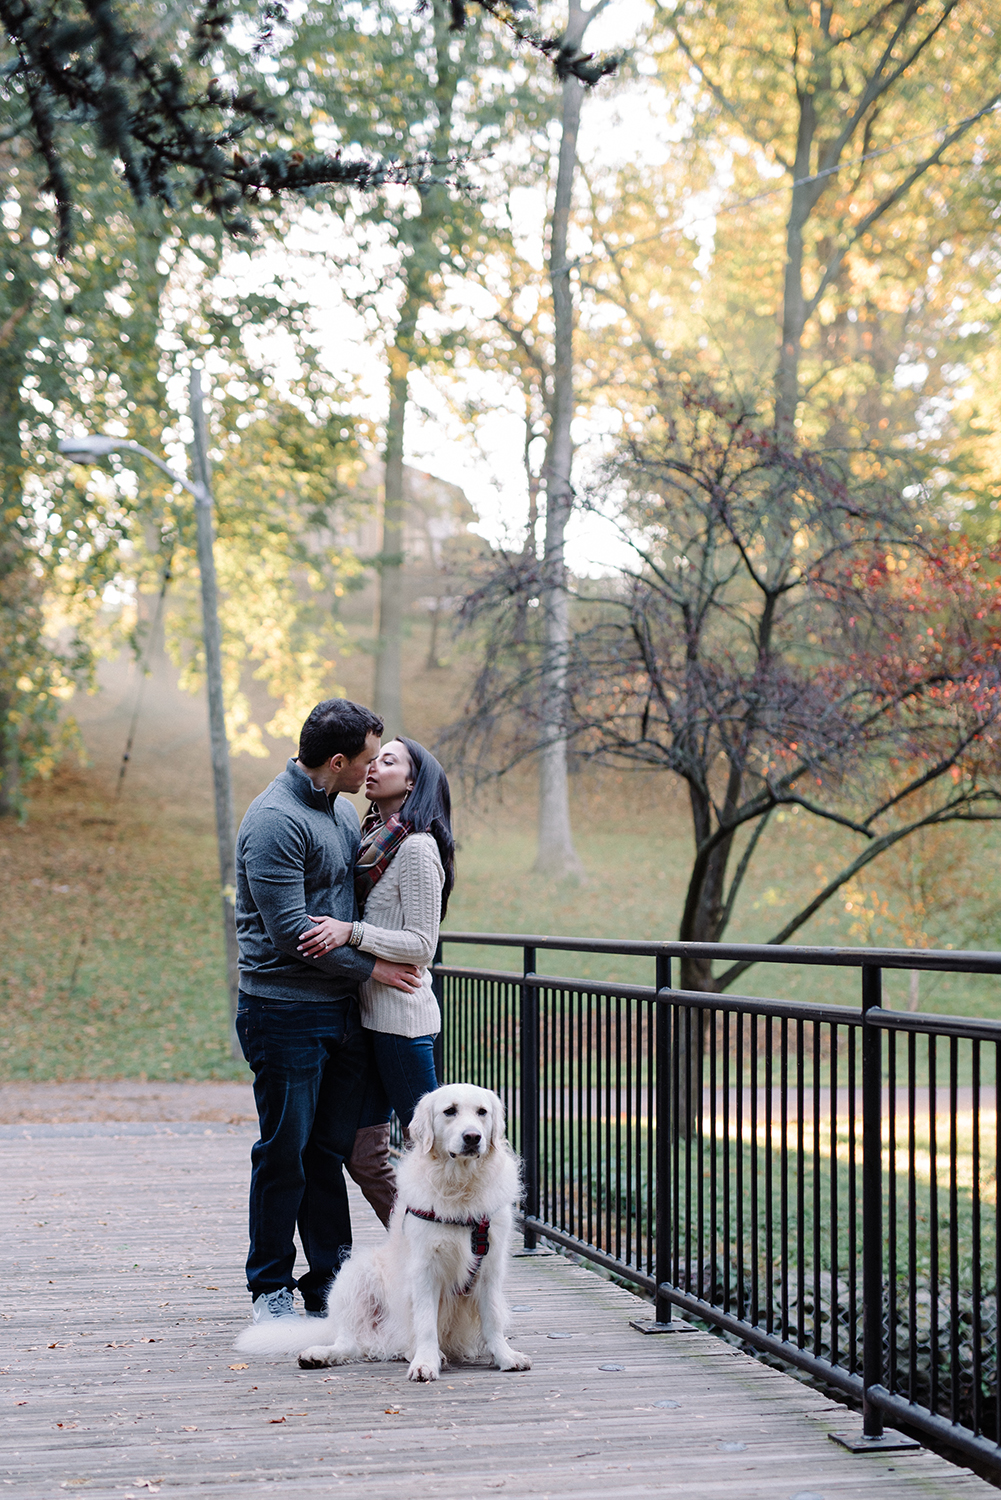 Melissa+Jeff- Local Park Engagement Session with Dog- Booth Park Nutley- New Jersey-Olivia Christina Photo-26.jpg